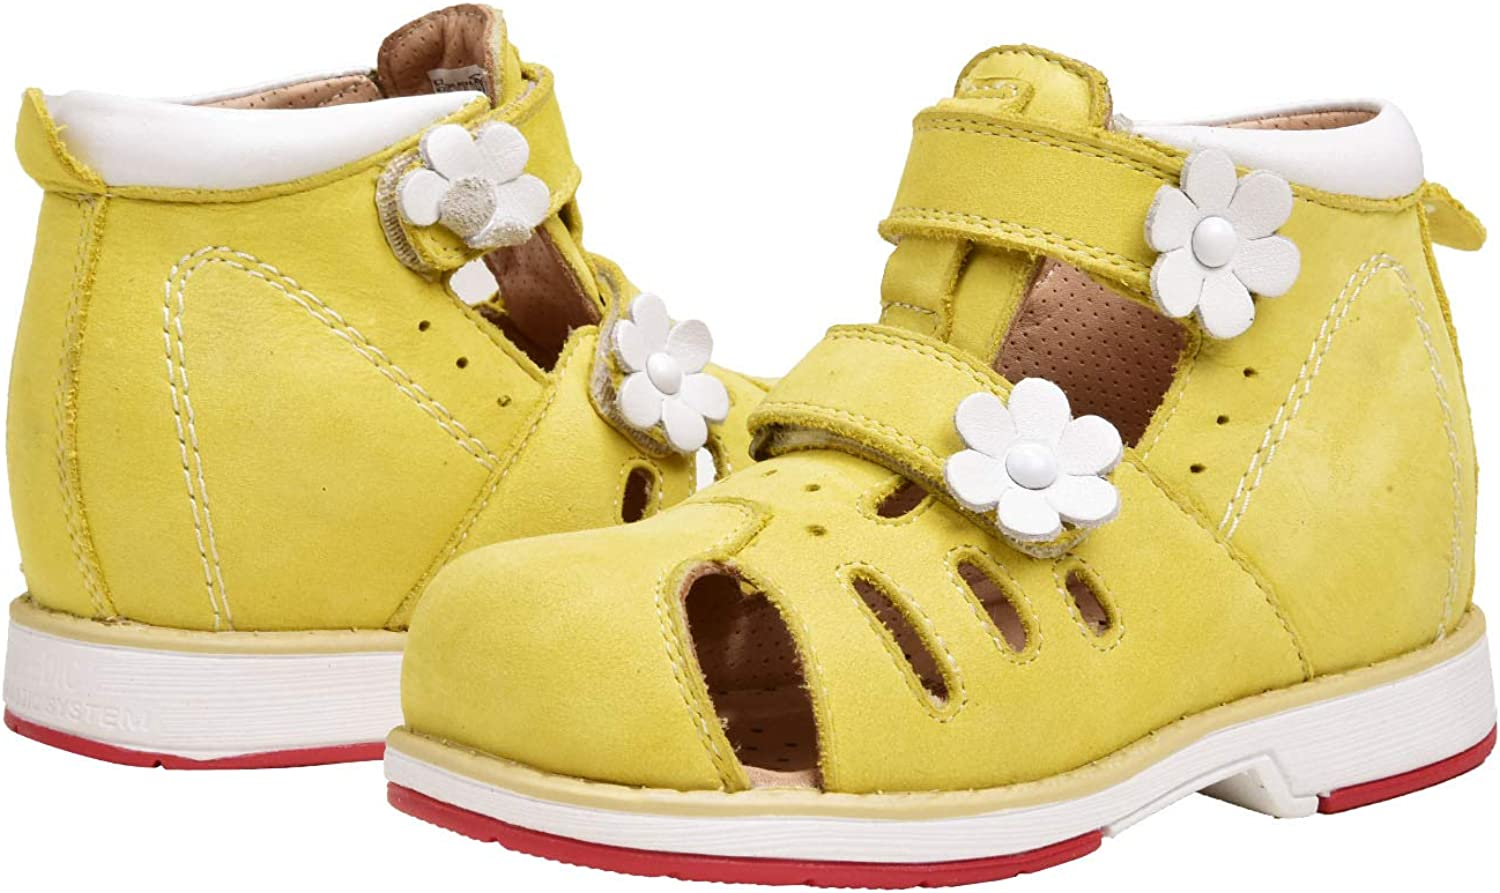 FREEDOMS KIDSS Health Shoes Orthopedic Fashion Yellow Leather Shoes with Arch Support for Girls